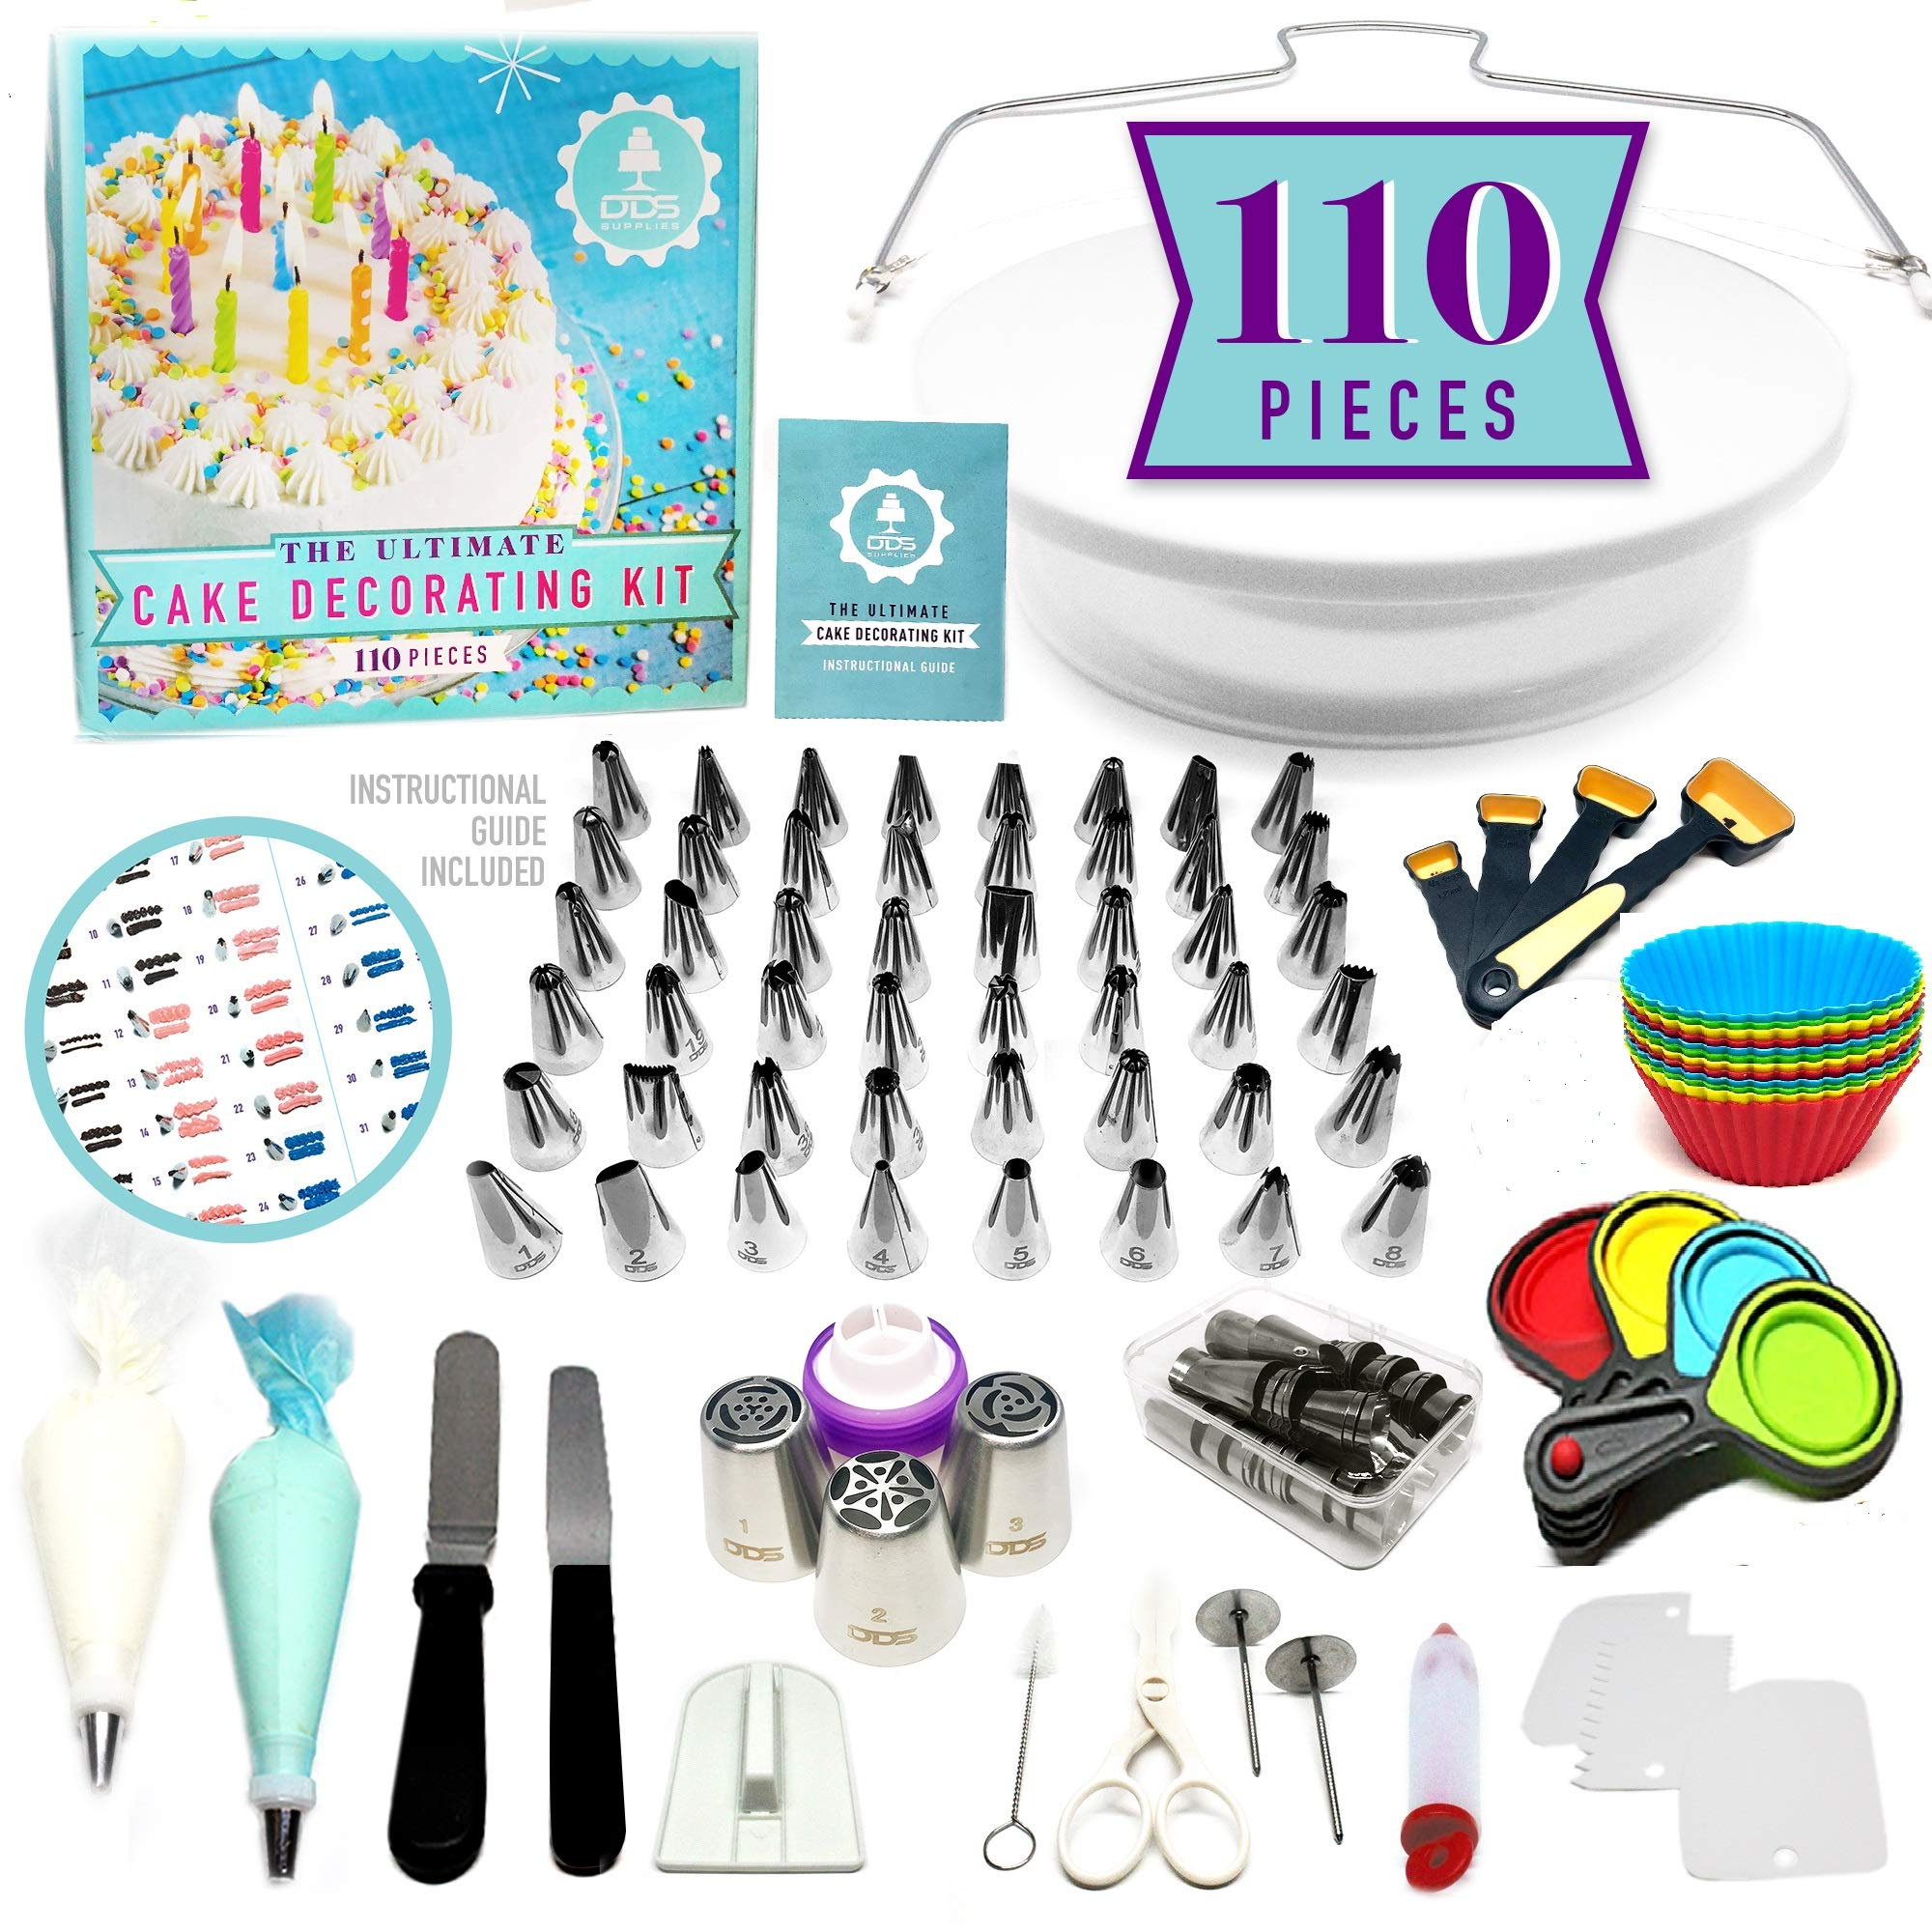 NEW!!! 110pc Ultimate Cake Decorating Supplies Kit, Rotating Cake Decorating Turntable,48 Piping Tips, 3-Russian Nozzles, Piping Bags,Baking Supplies,Cupcake Decorating Kit,Icing Tips,Decorating Tools by DDS Supplies